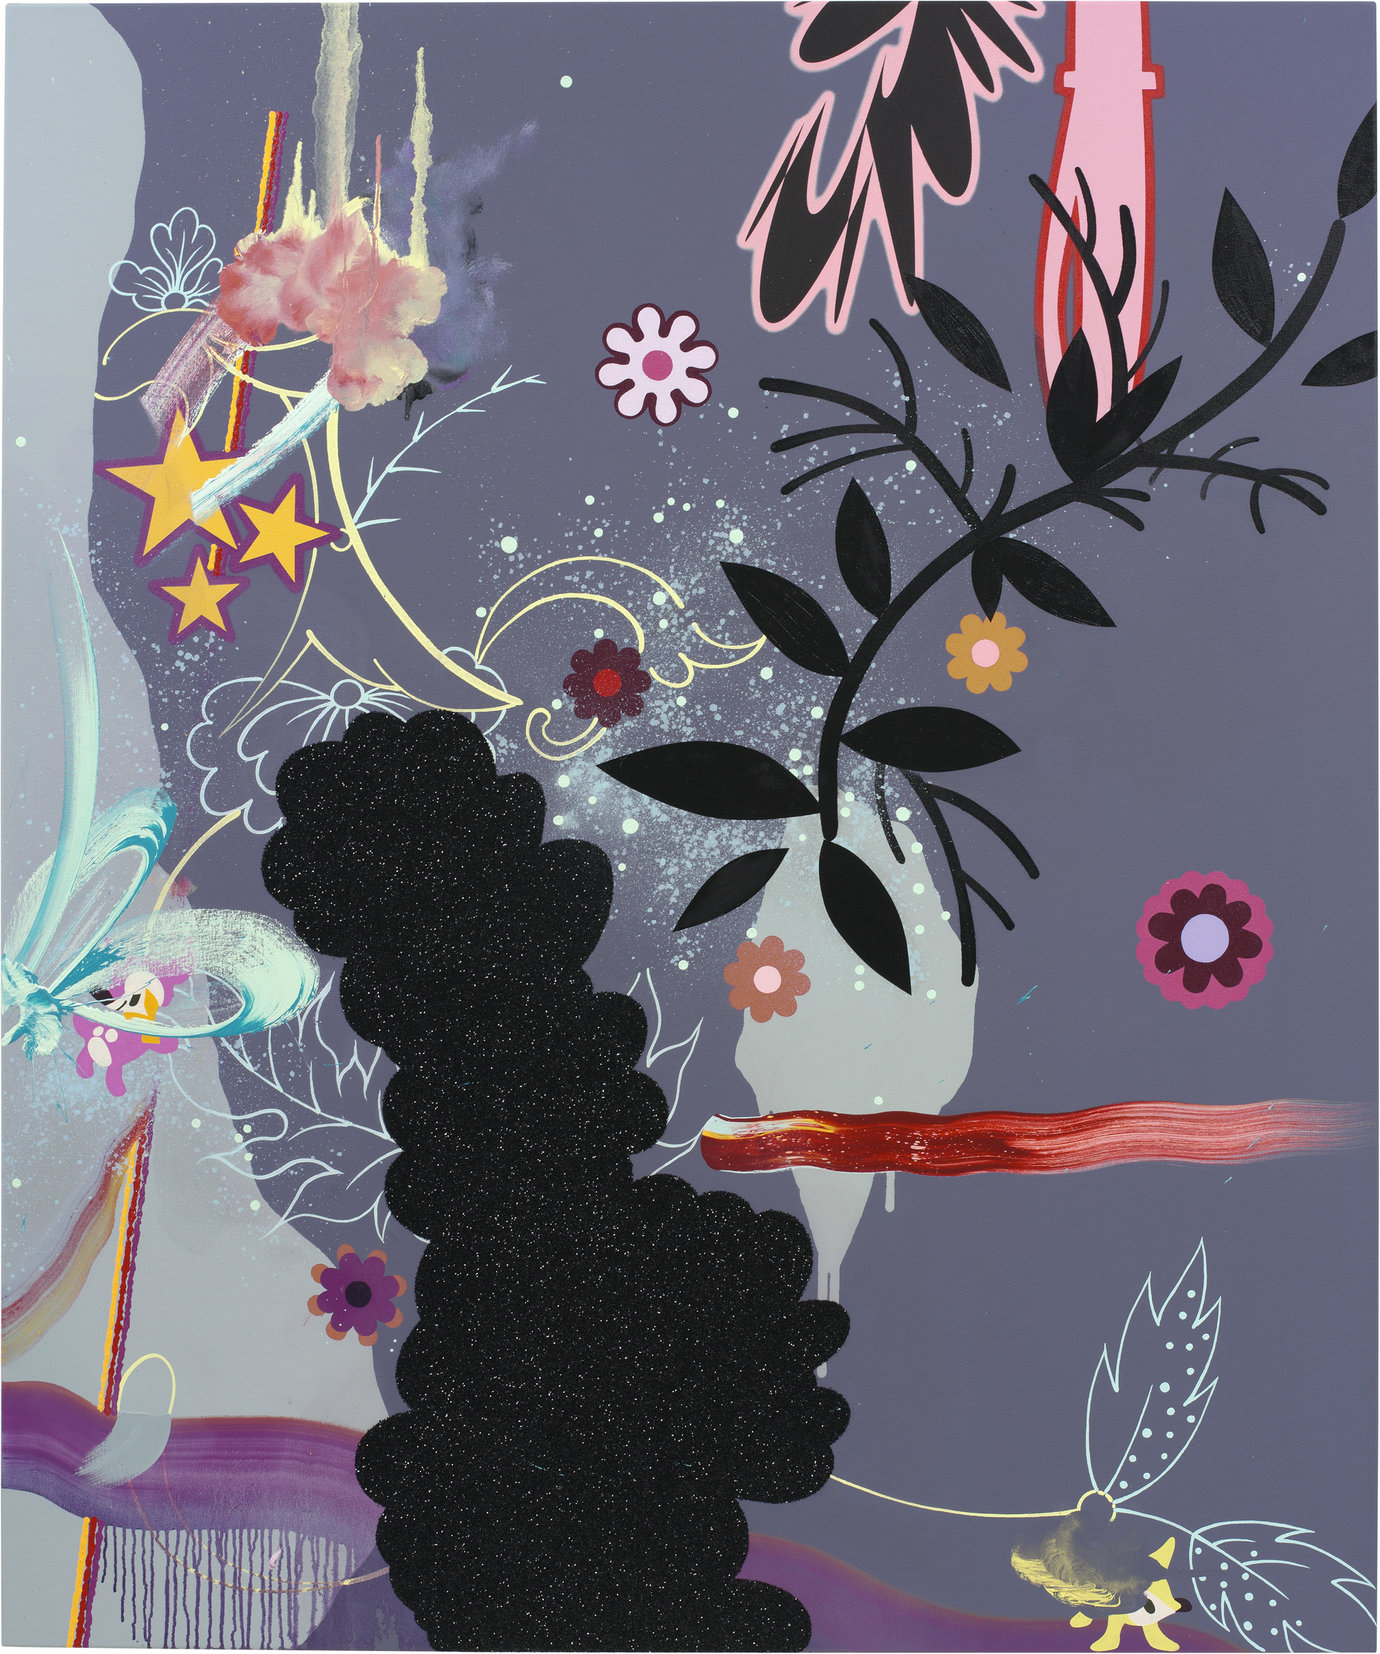 ", 2005. Oil, acrylic and glitter on canvas, 60"" x 50"" (152.4 cm x 127 cm)."